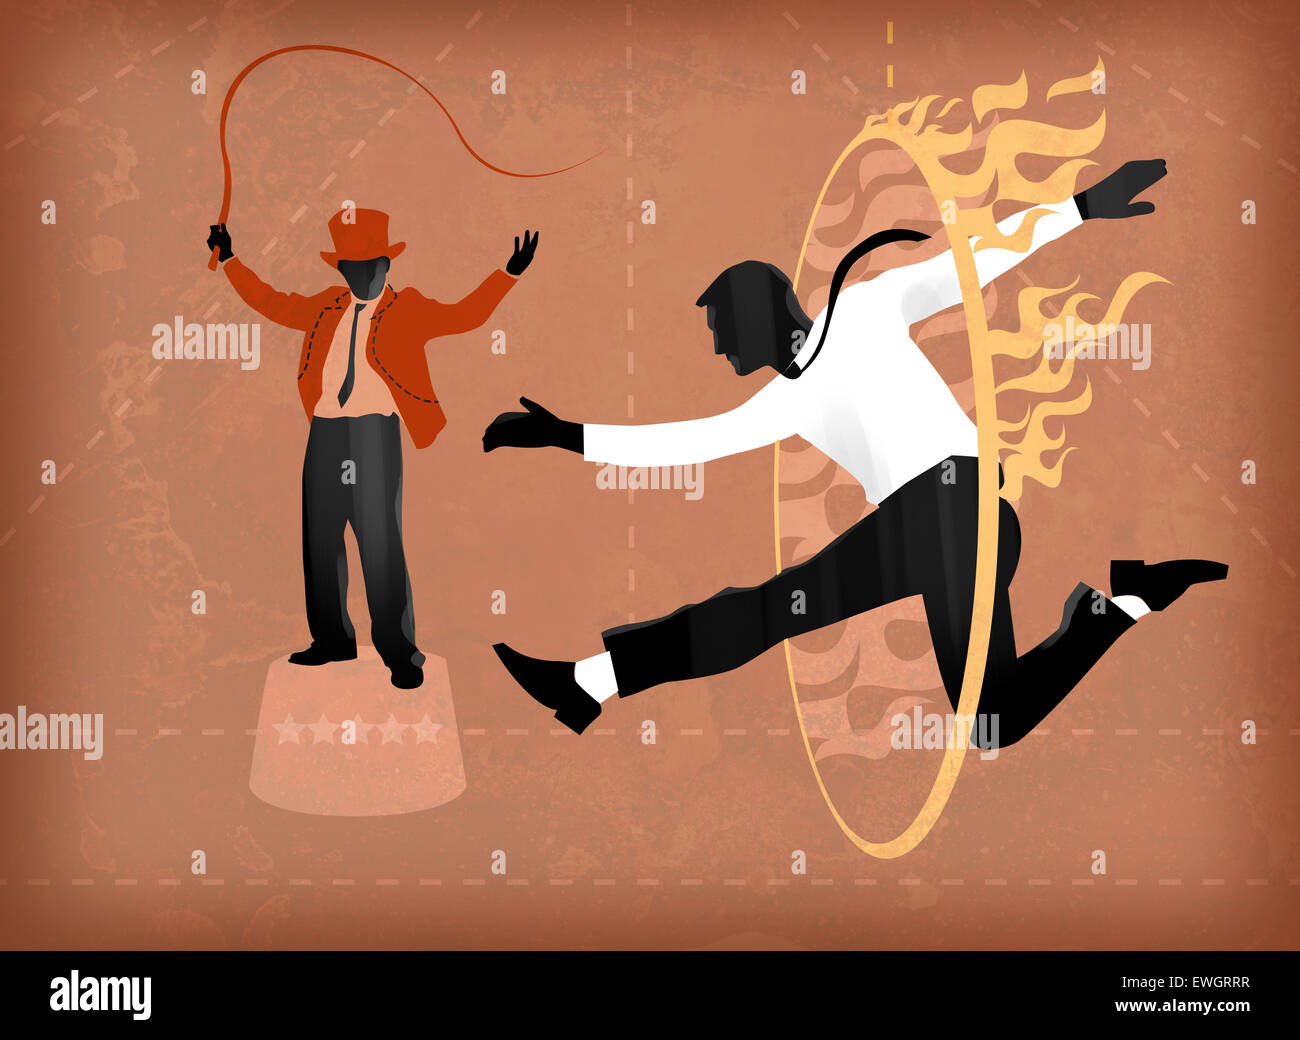 Ringmaster taming man passing through fire ring - Stock Image